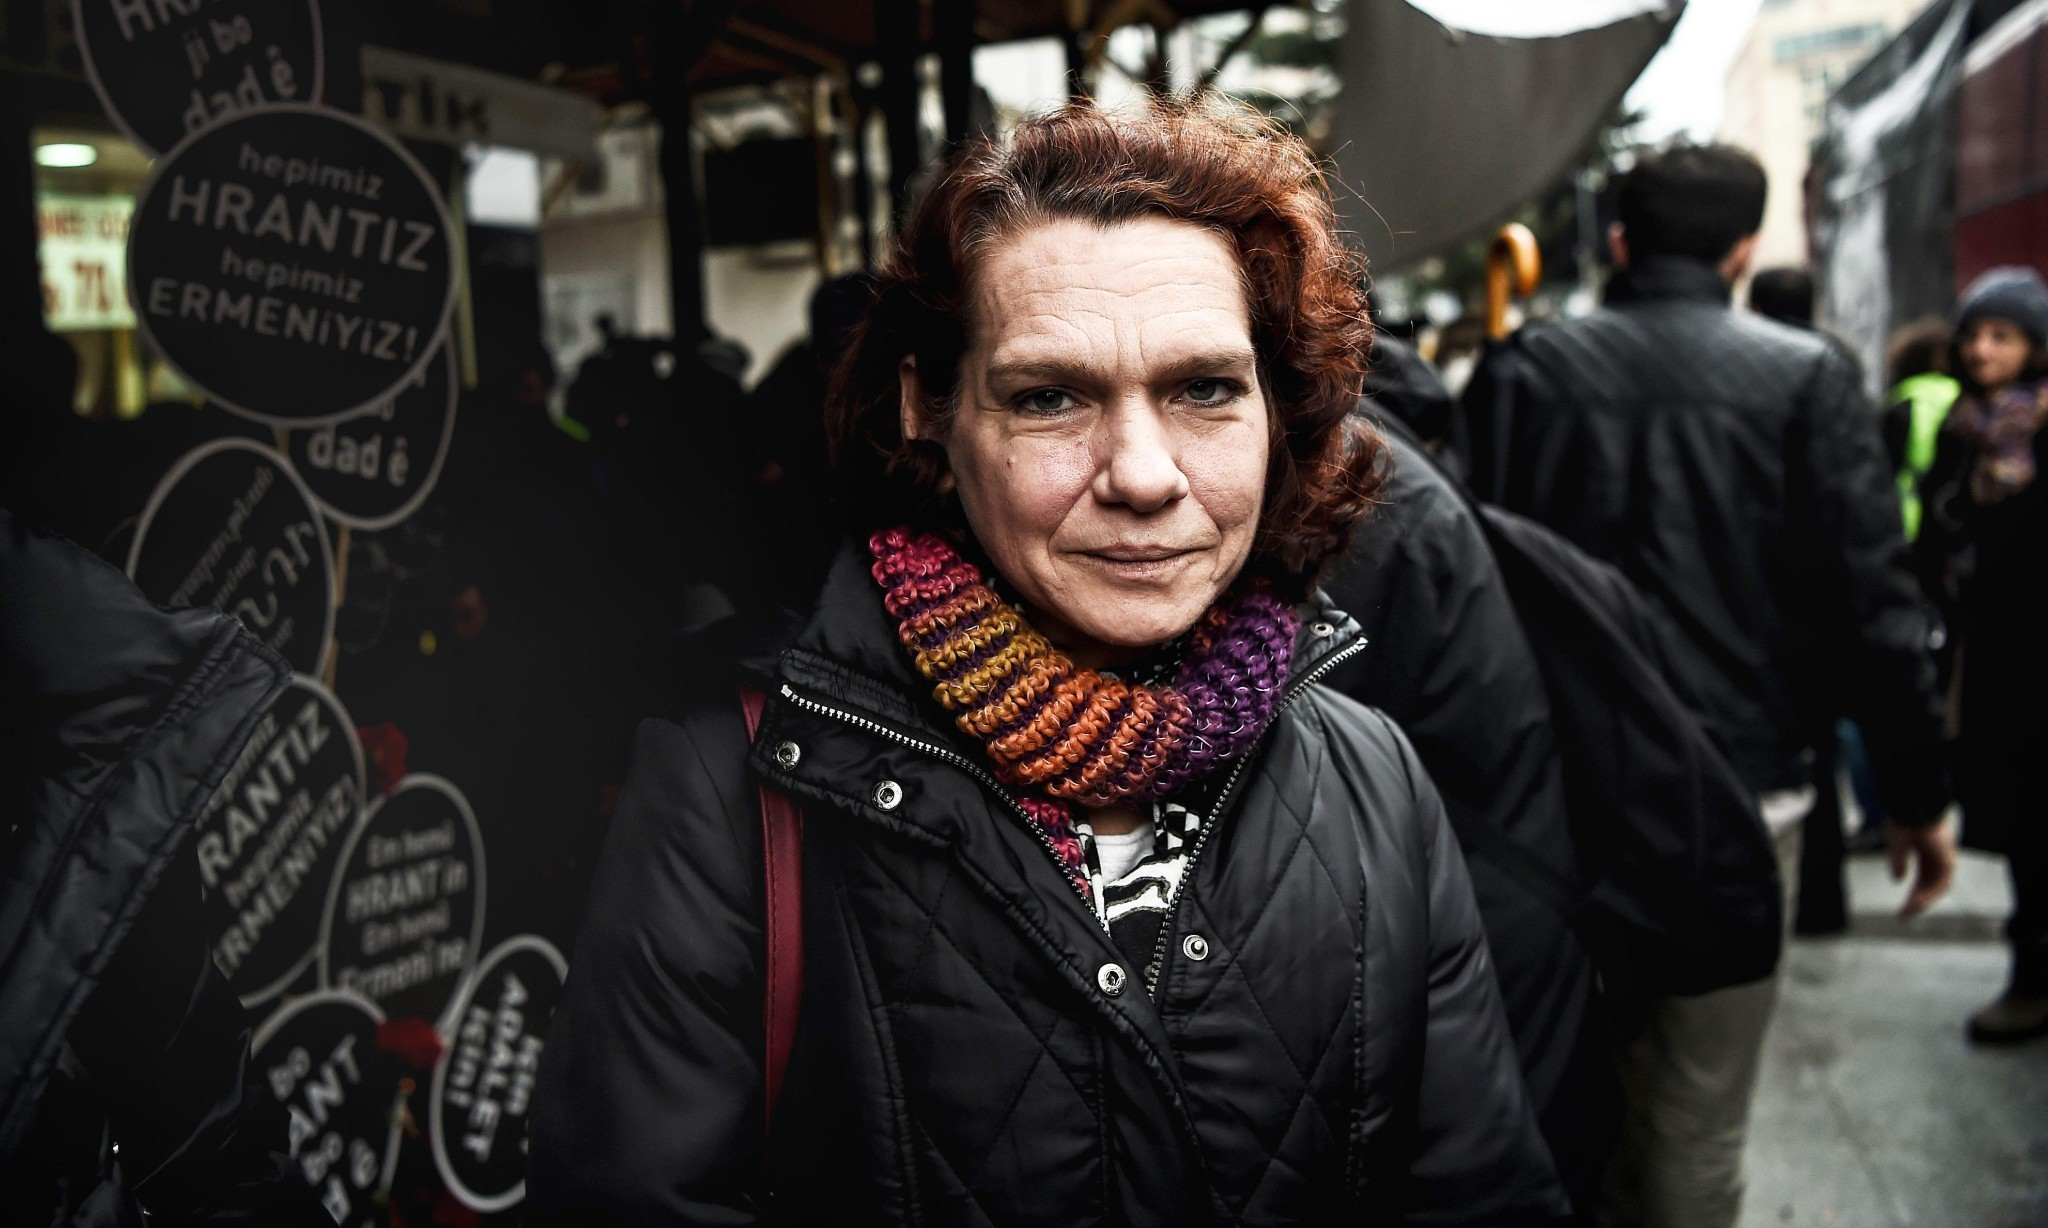 'Sometimes I laugh at this farce': six writers on life behind bars in Turkey